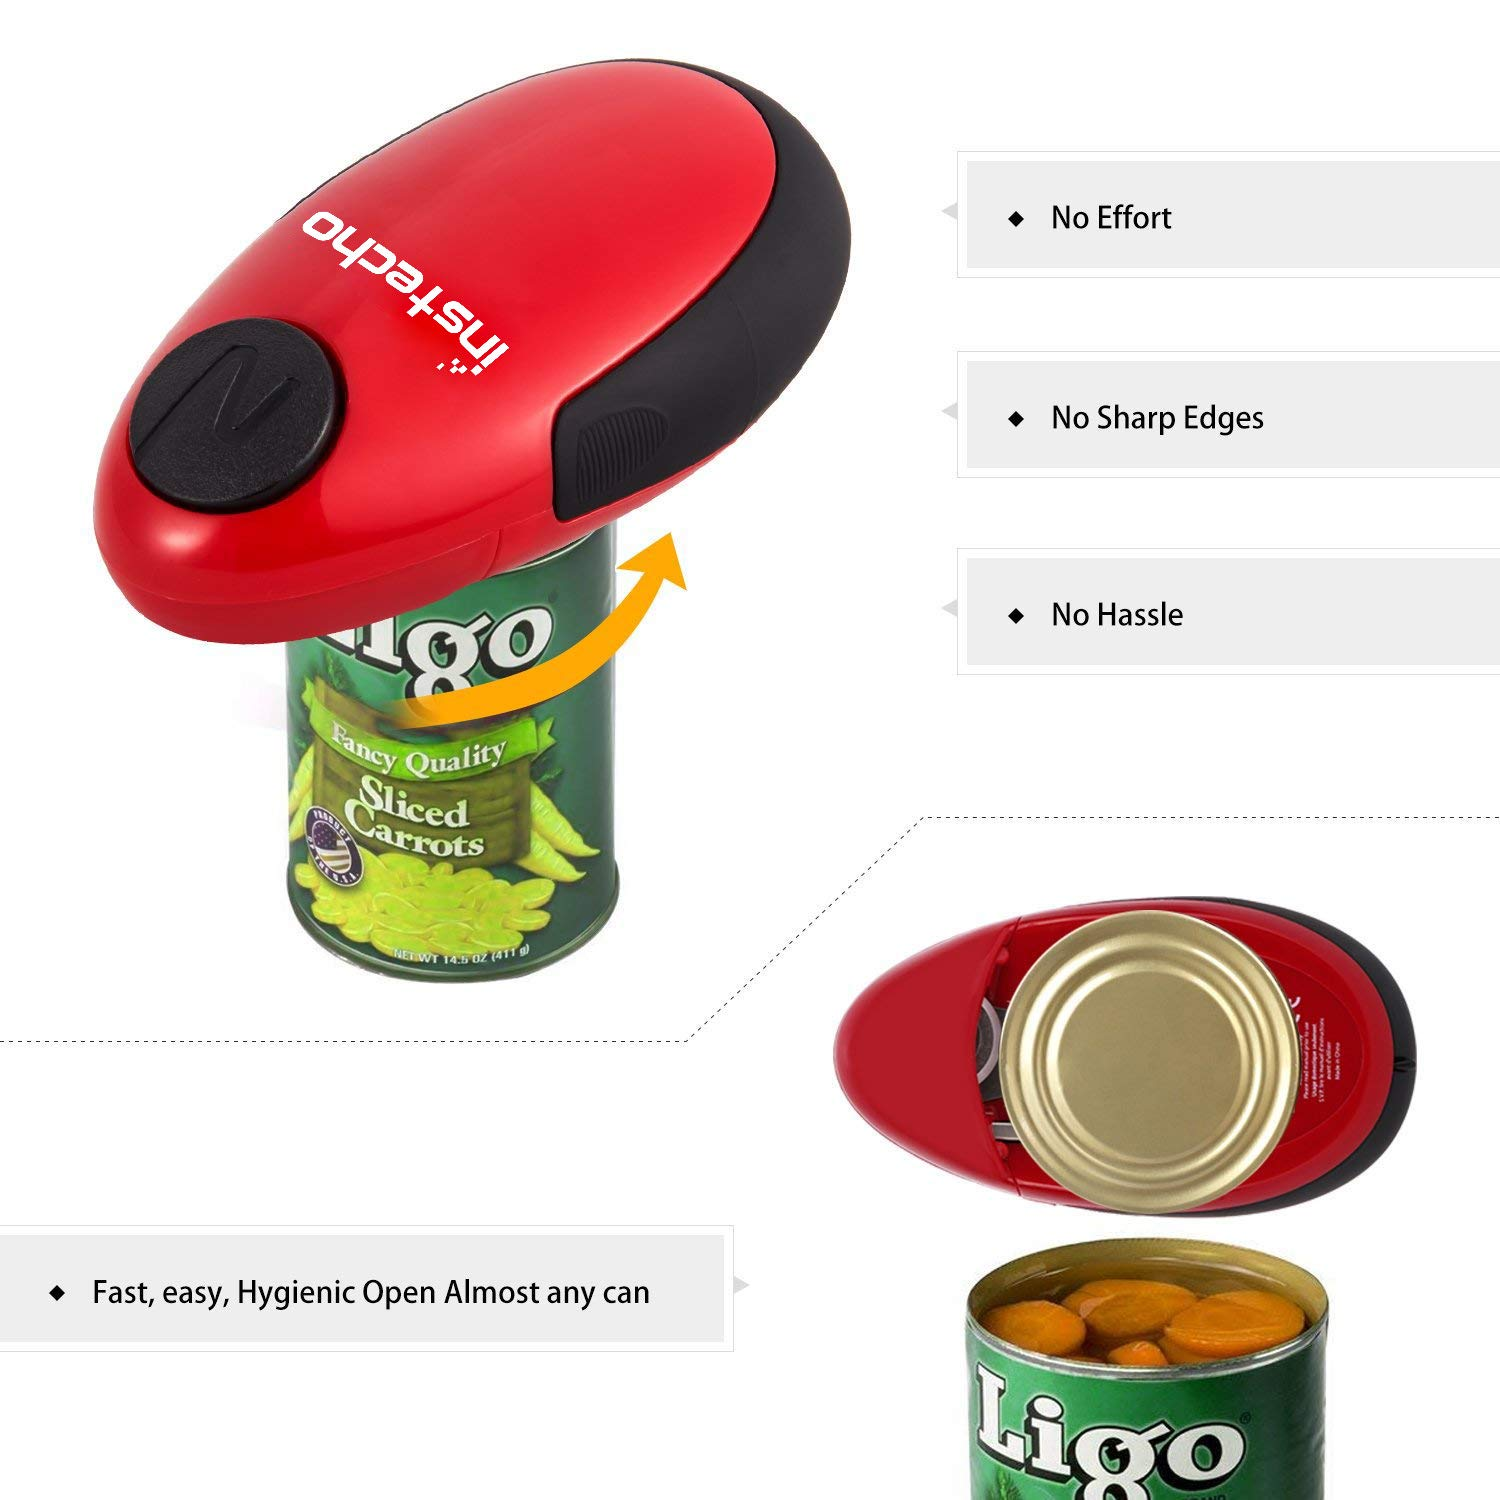 Electric Can Opener, Cakie Restaurant Can Opener Smooth Soft Edge One-touch Battery Automatic Electric Hands-free Can Opener For Kitchen Arthritis Elderly Travel and Chef's Best Choice's (Red) by instecho (Image #3)